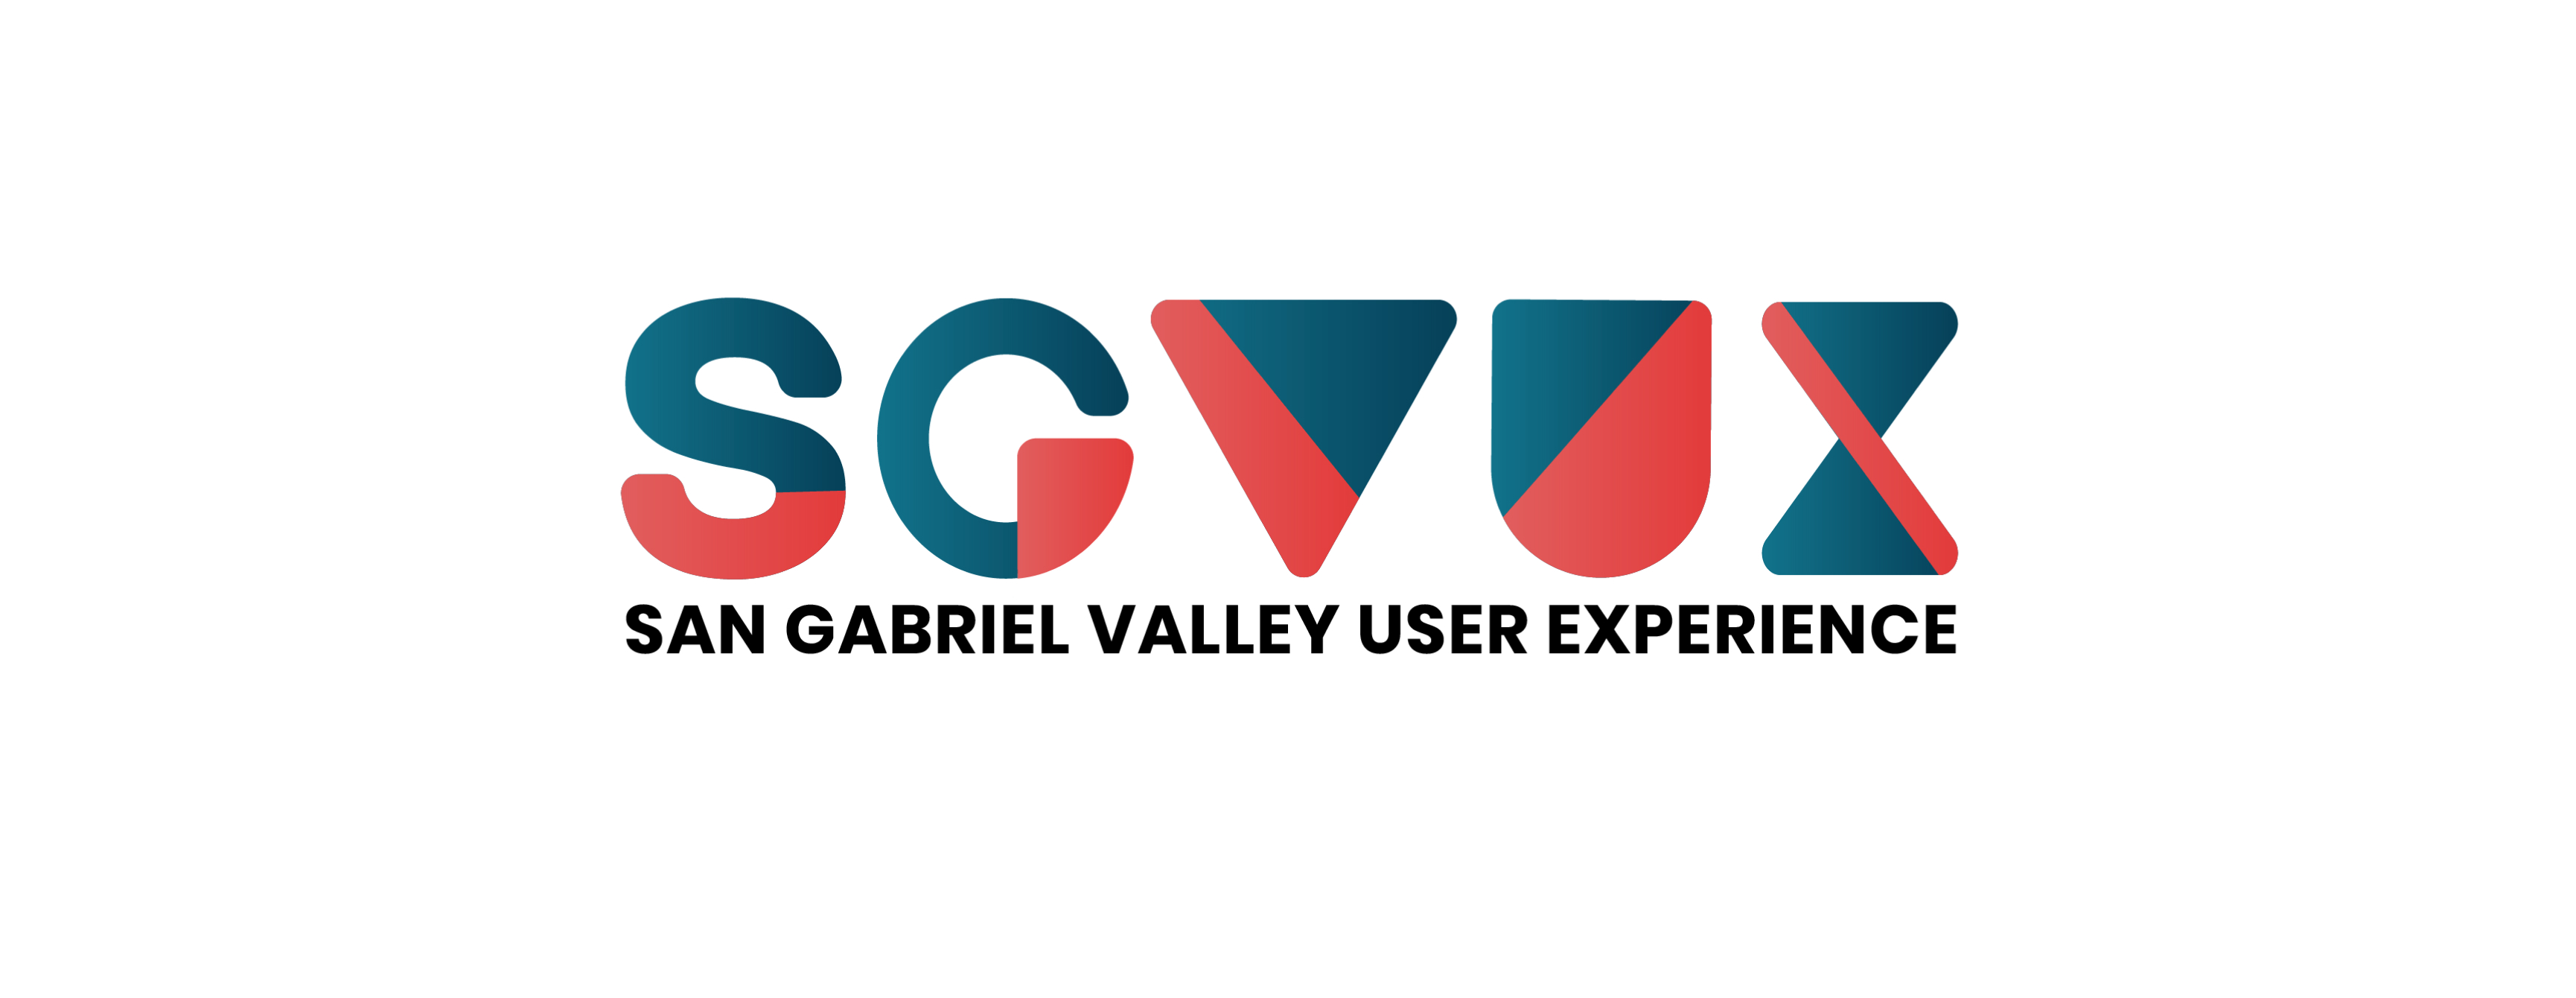 San Gabriel Valley UX